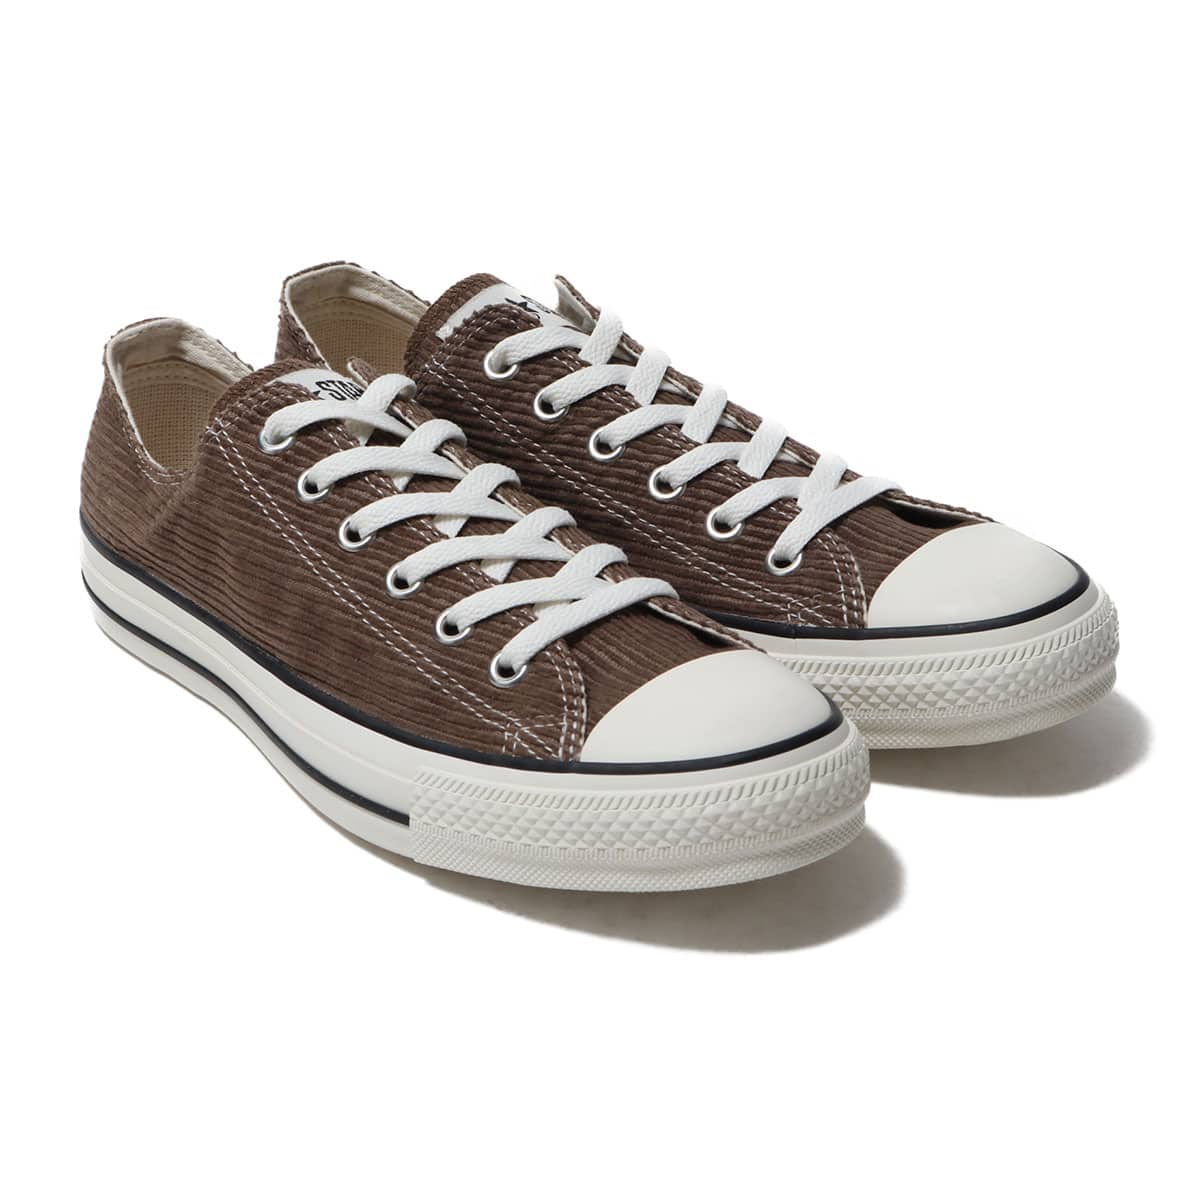 CONVERSE ALL STAR WASHEDCORDUROY OX BROWN 19HO-I_photo_large